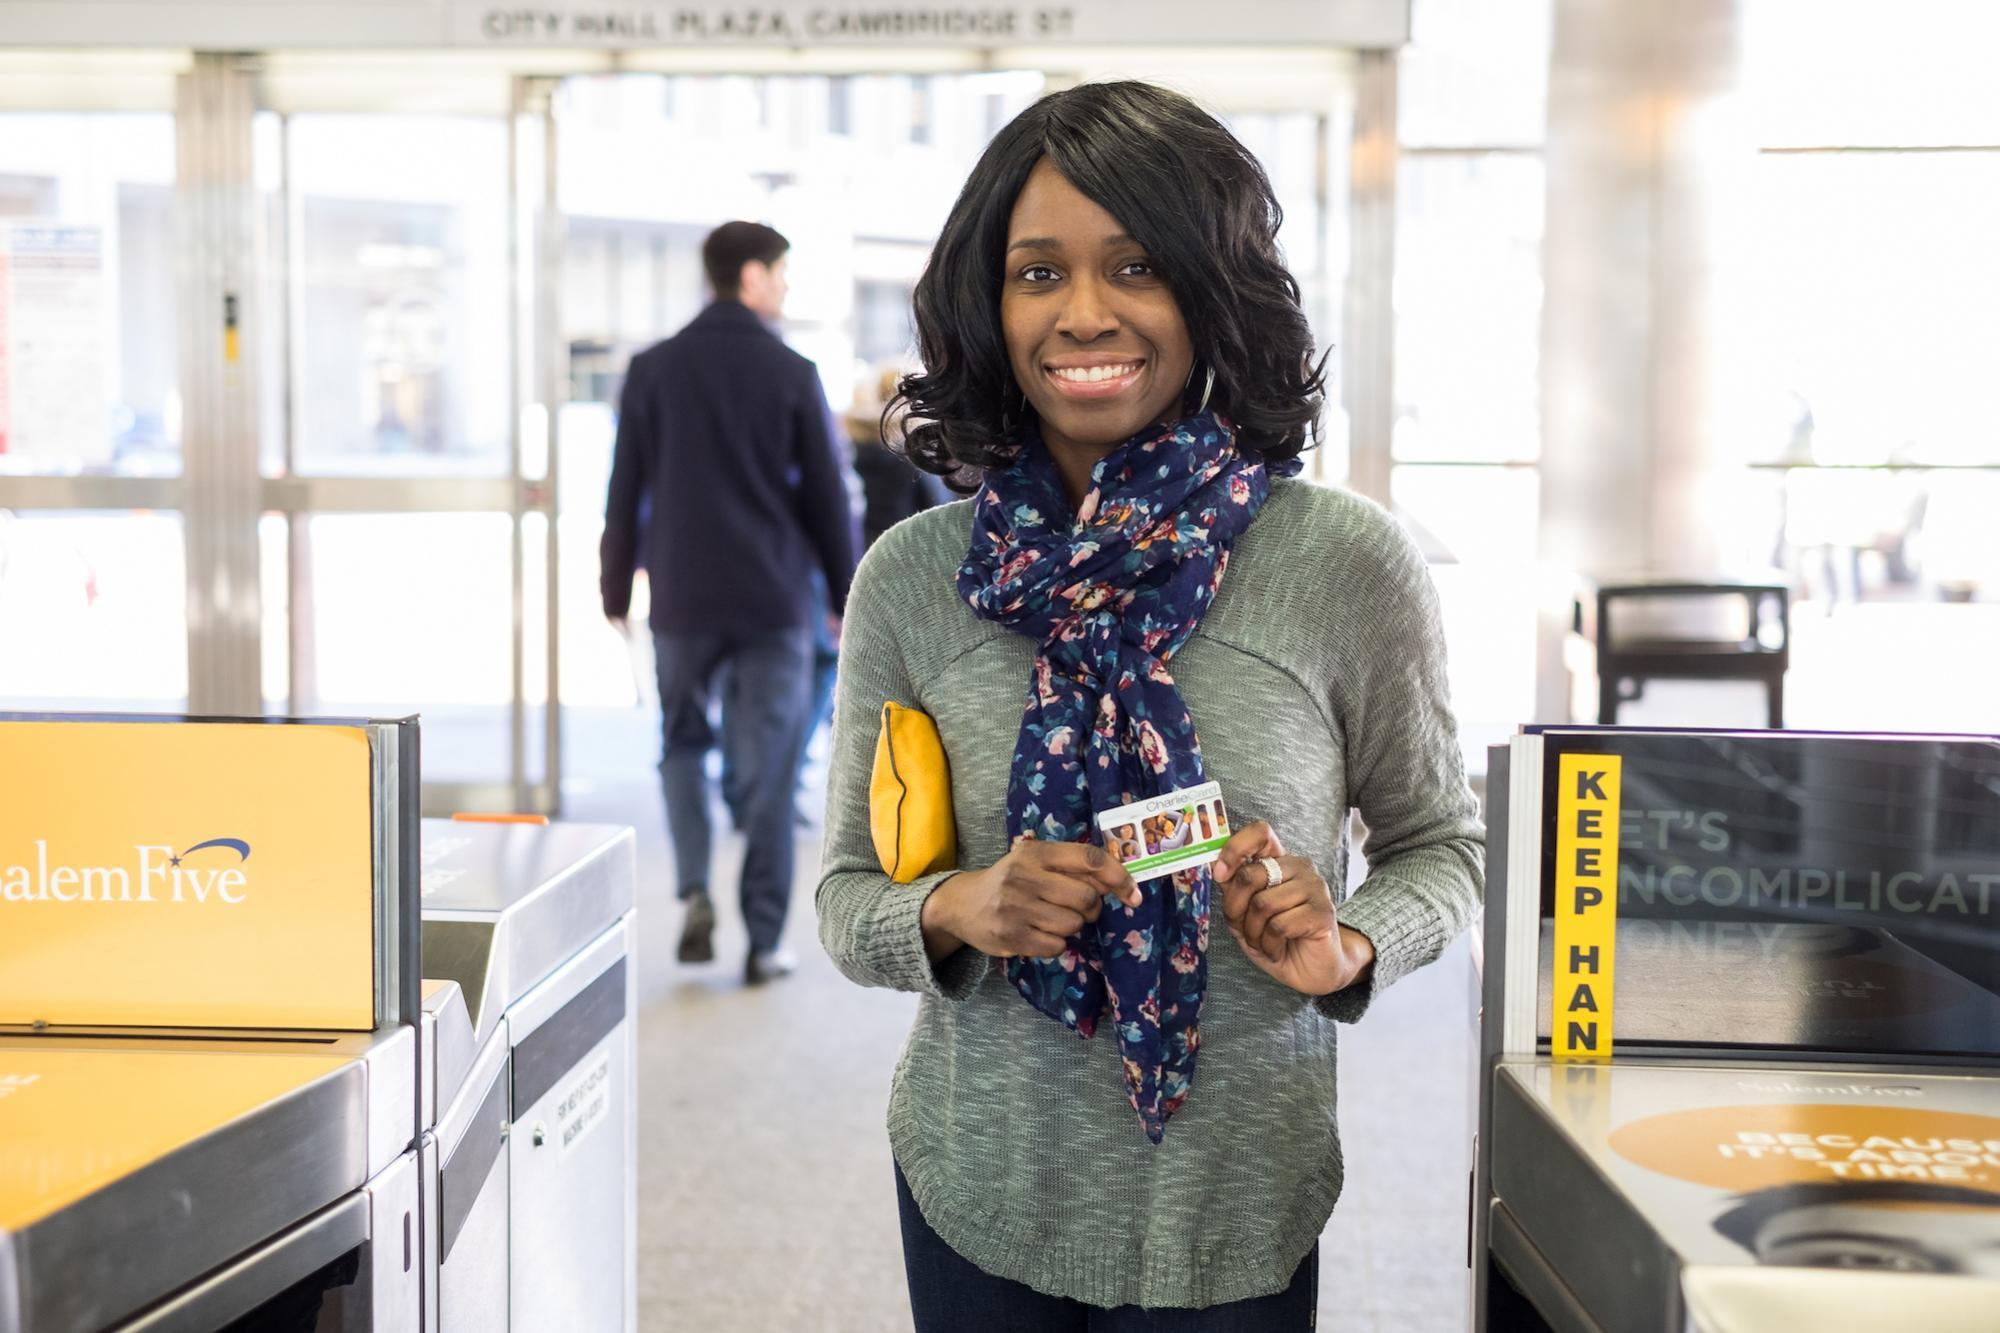 Woman entering fare gate with CharlieCard